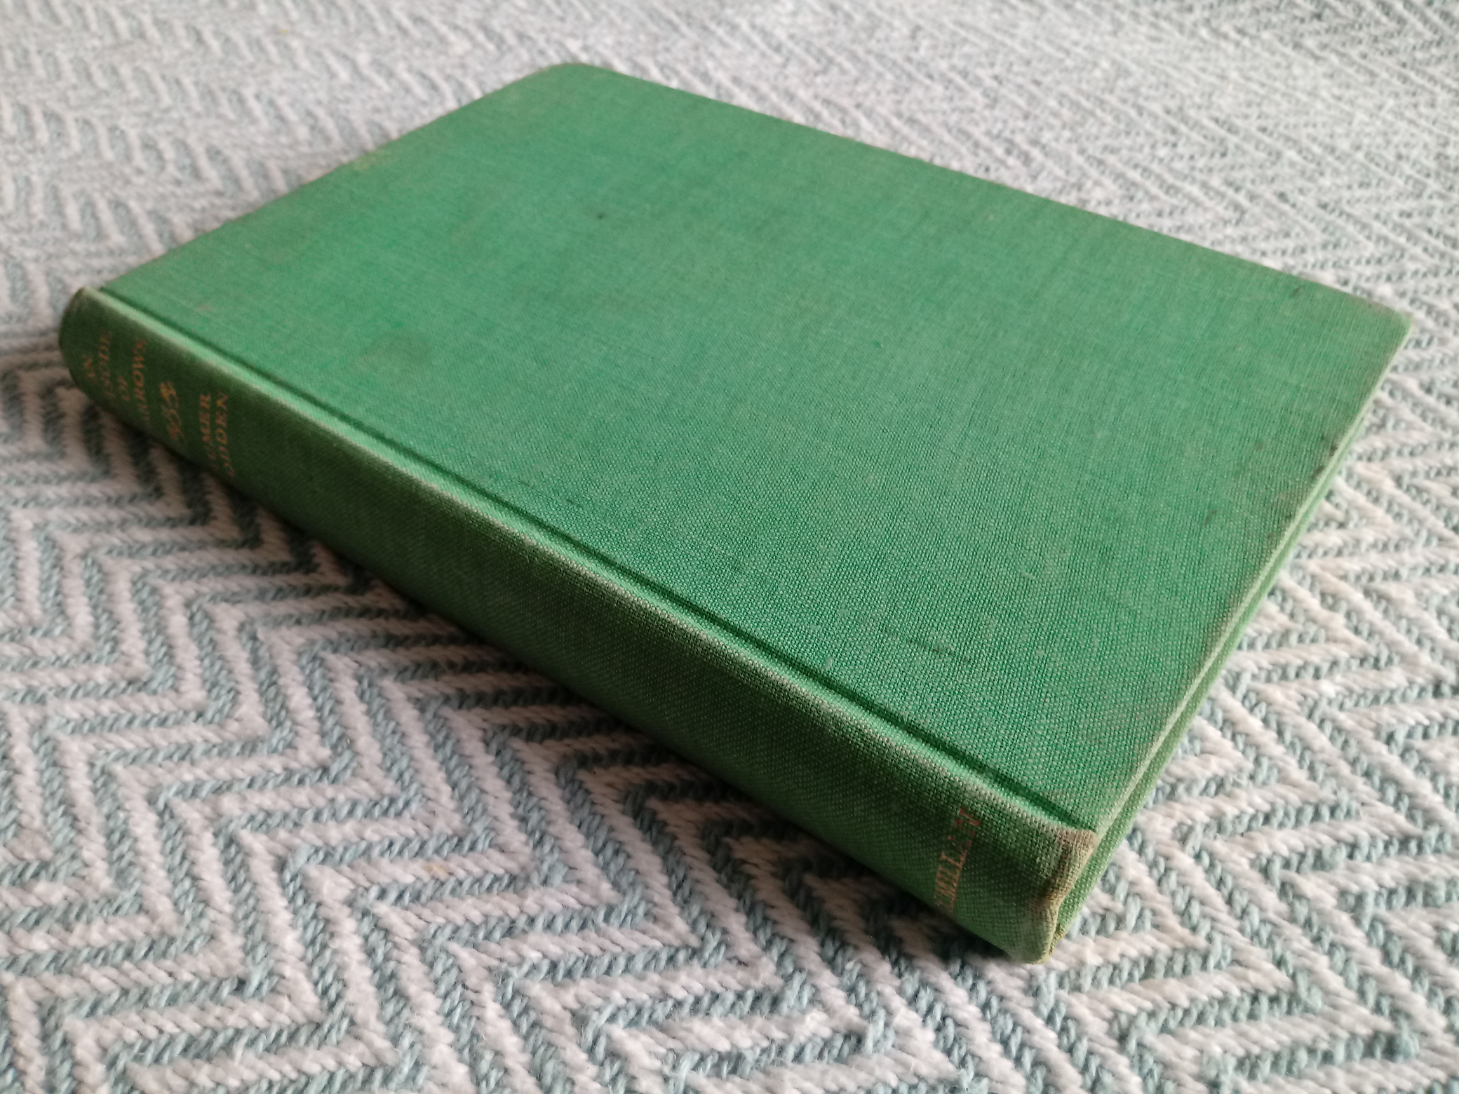 An Episode Of Sparrows by Rumer Godden 264 pages Published 1956 Macmillan & Co Ltd. Showing signs of